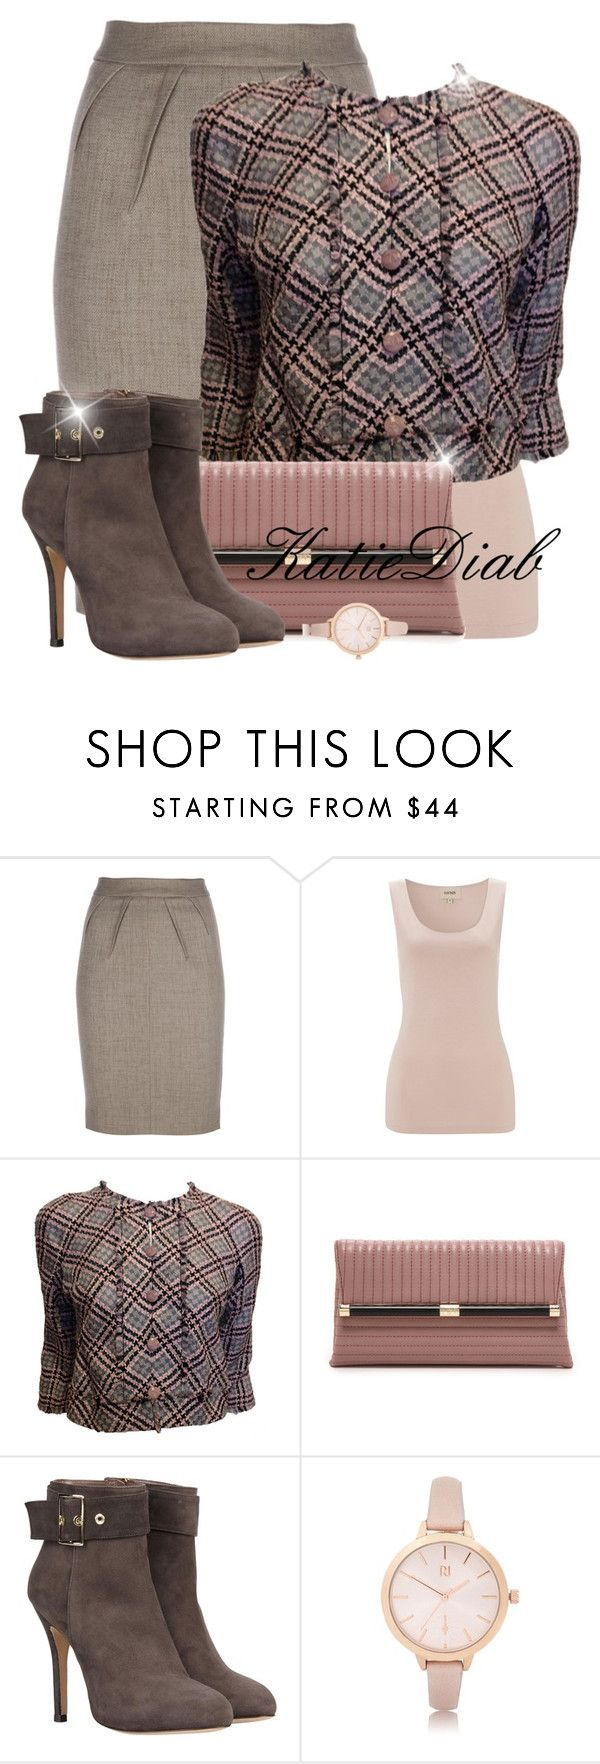 """Pink&Grey"" by katiediab ❤ liked on Polyvore featuring Emporio Armani, Havren, Chanel, Diane Von Furstenberg, 8, River Island, Pink, set and grey"